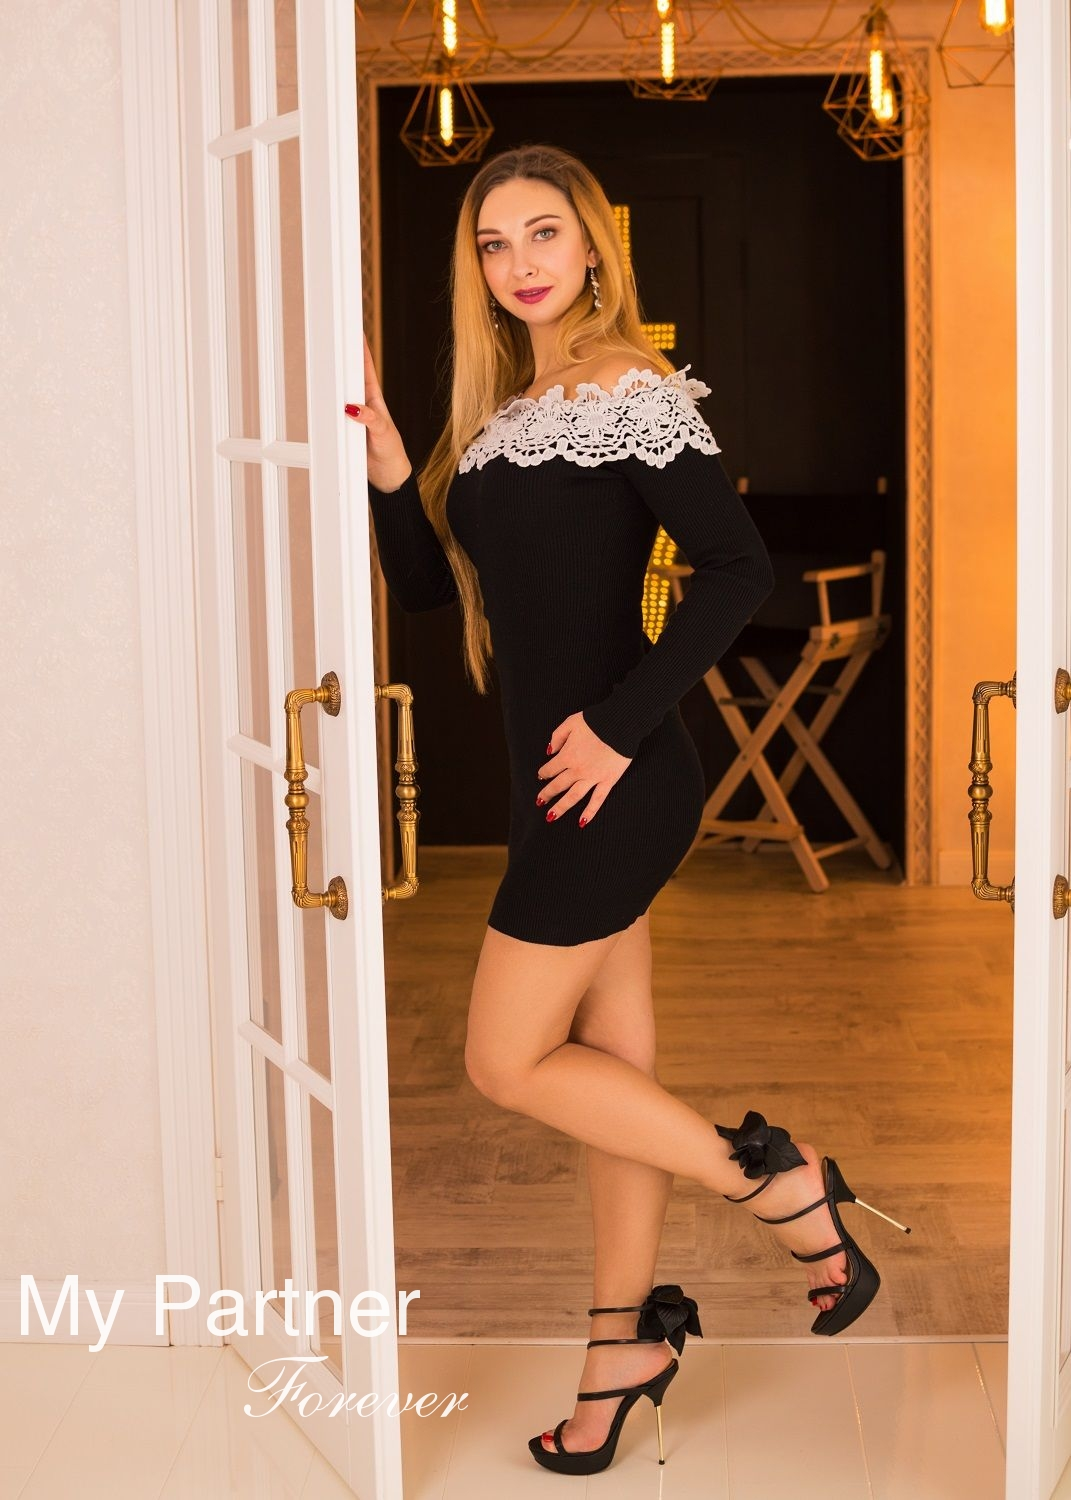 Stunning Girl from Ukraine - Ekaterina from Kiev, Ukraine